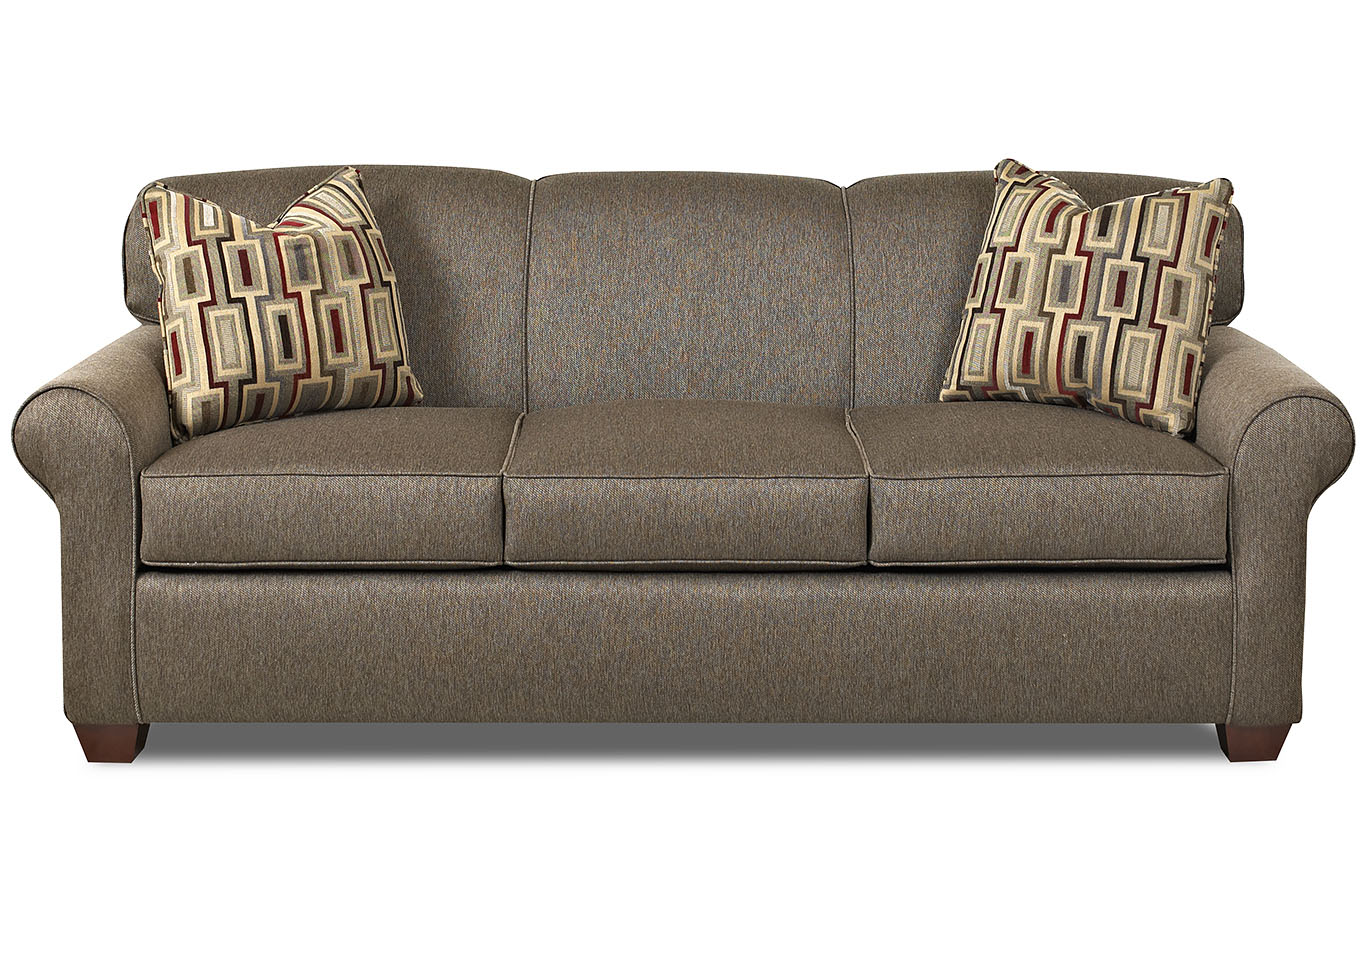 Mayhew Cocoa Stationary Fabric Sofa,Klaussner Home Furnishings